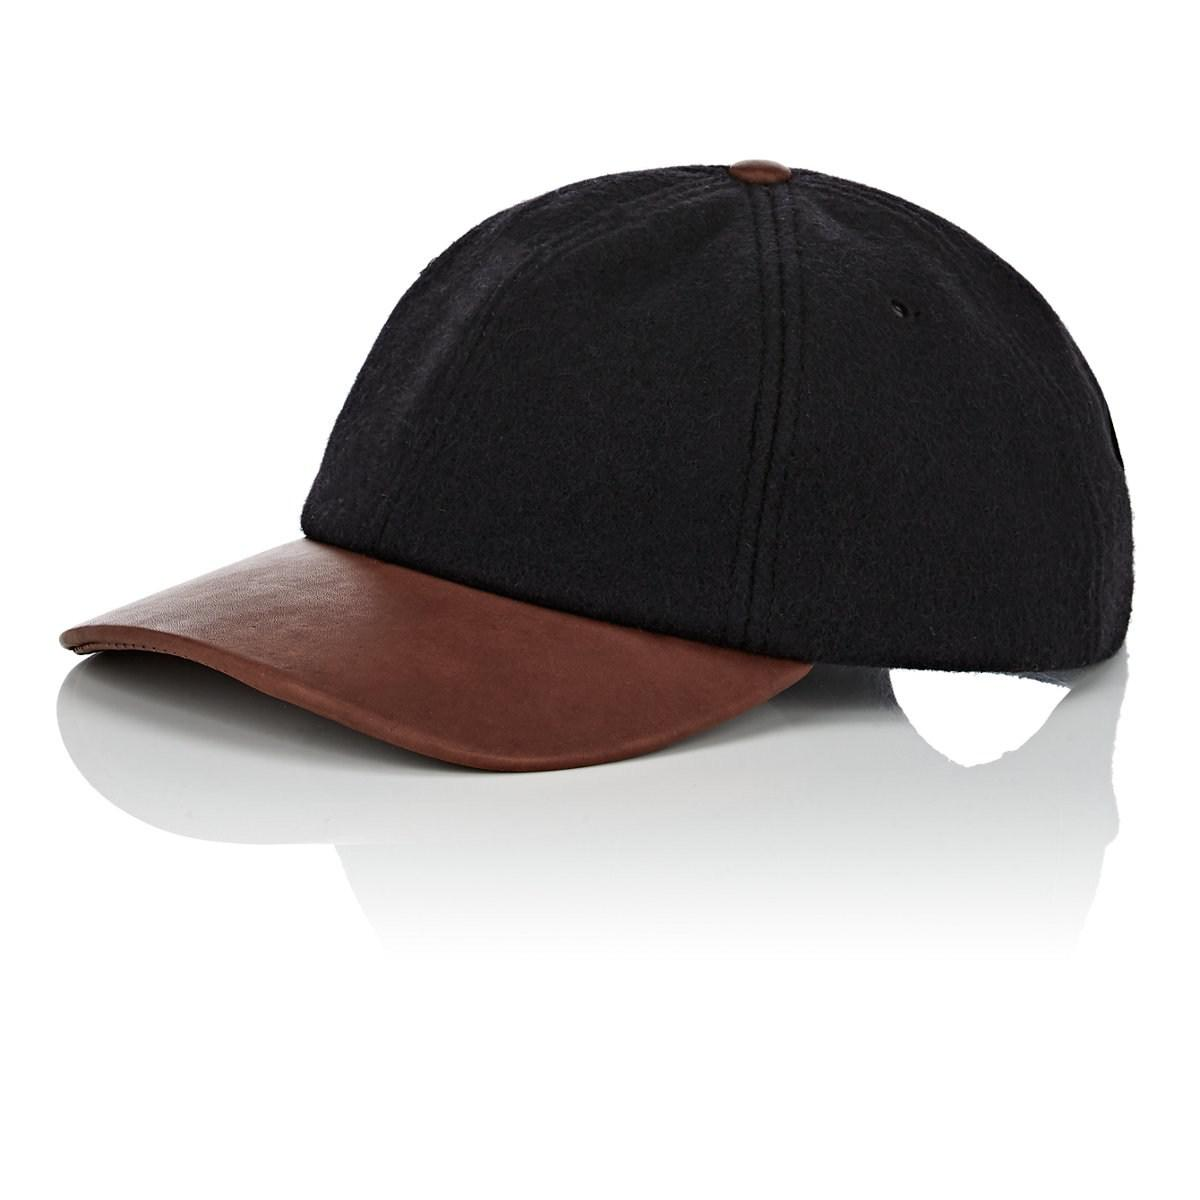 Lyst - Crown Cap Wool-blend   Leather Baseball Cap in Black for Men 5c2778cc691c